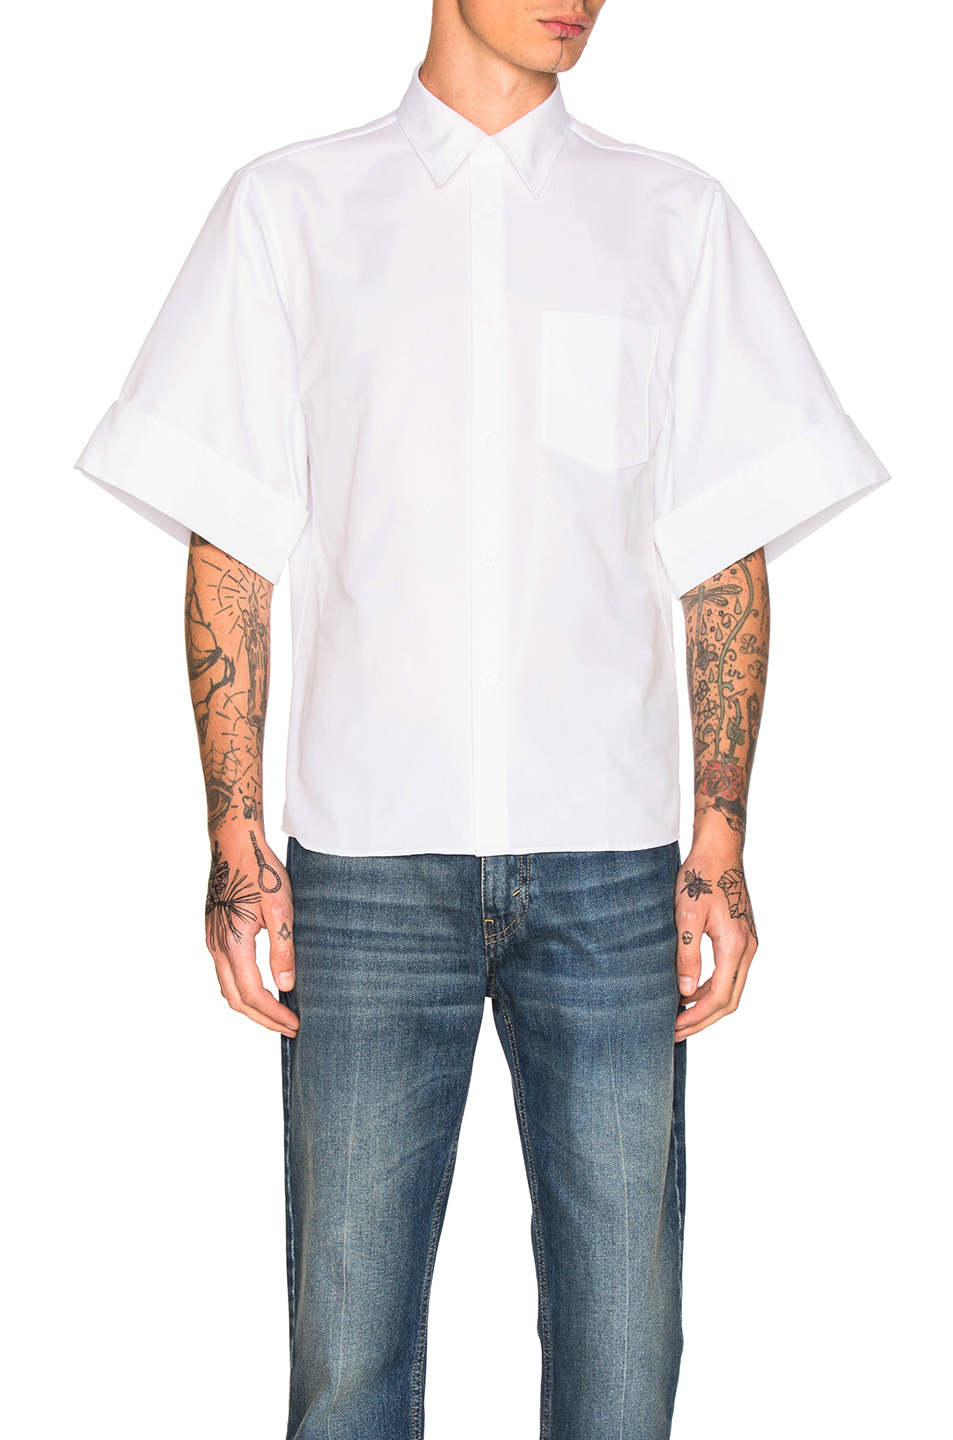 Acne Studios Birch Cotton Shirt in White